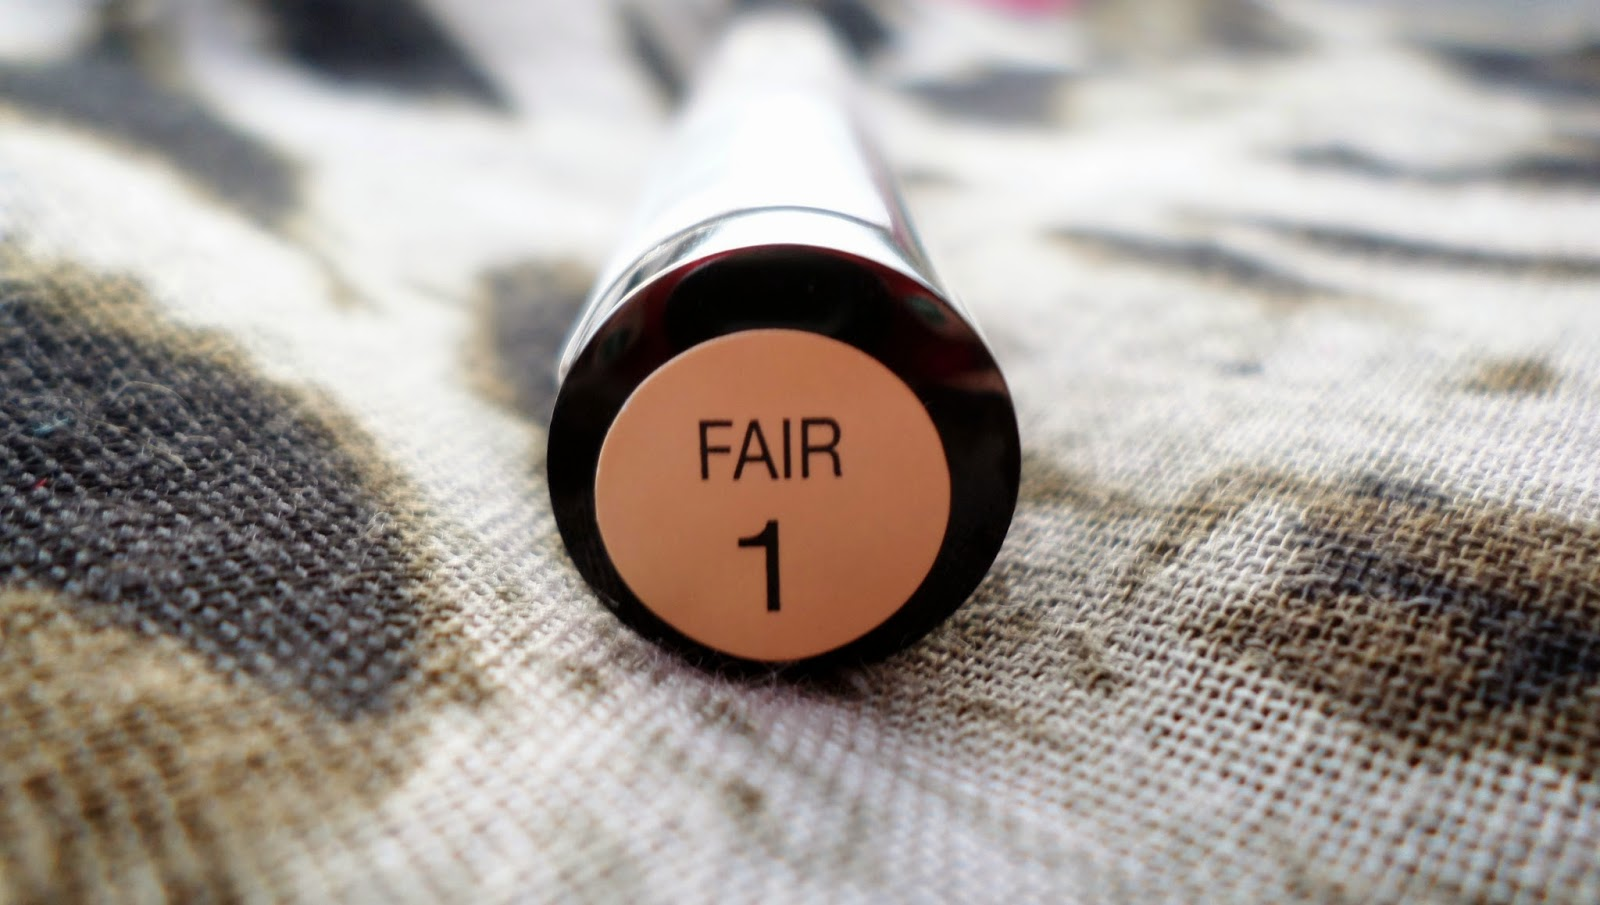 Collection Lasting Perfection Concealer in Fair 1